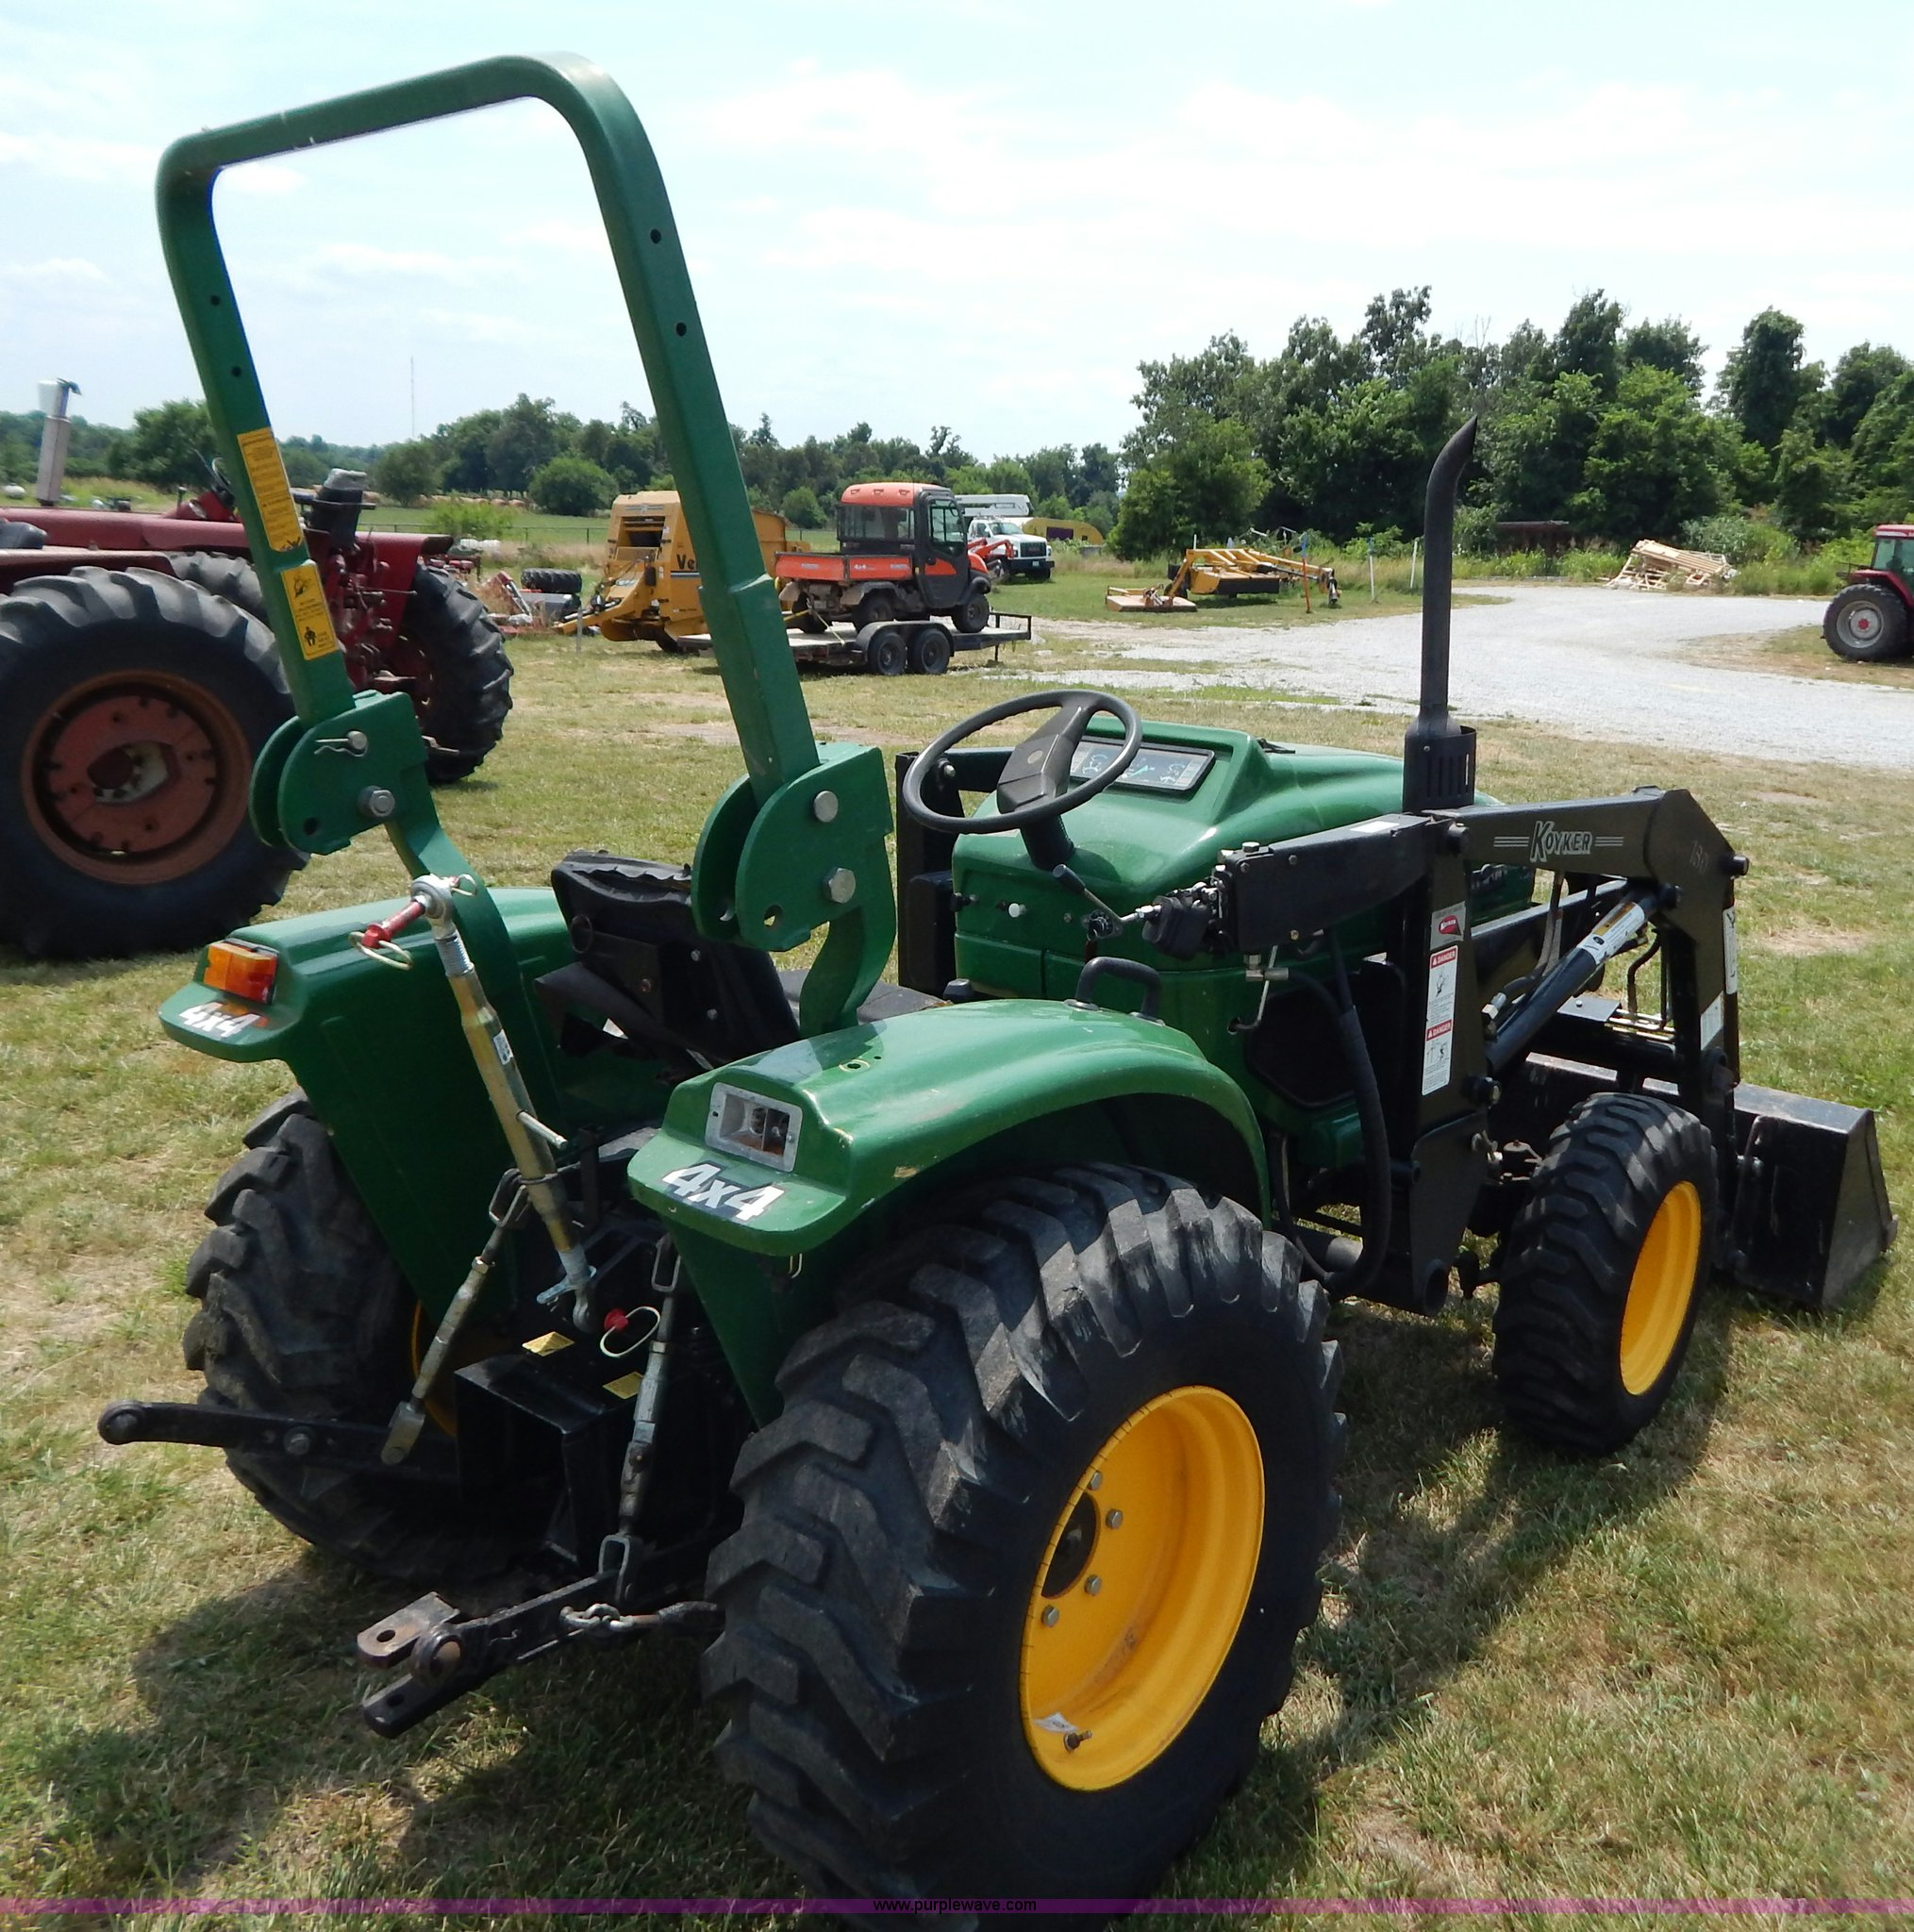 Agracat Tractor Parts : Agracat tractor item f sold july